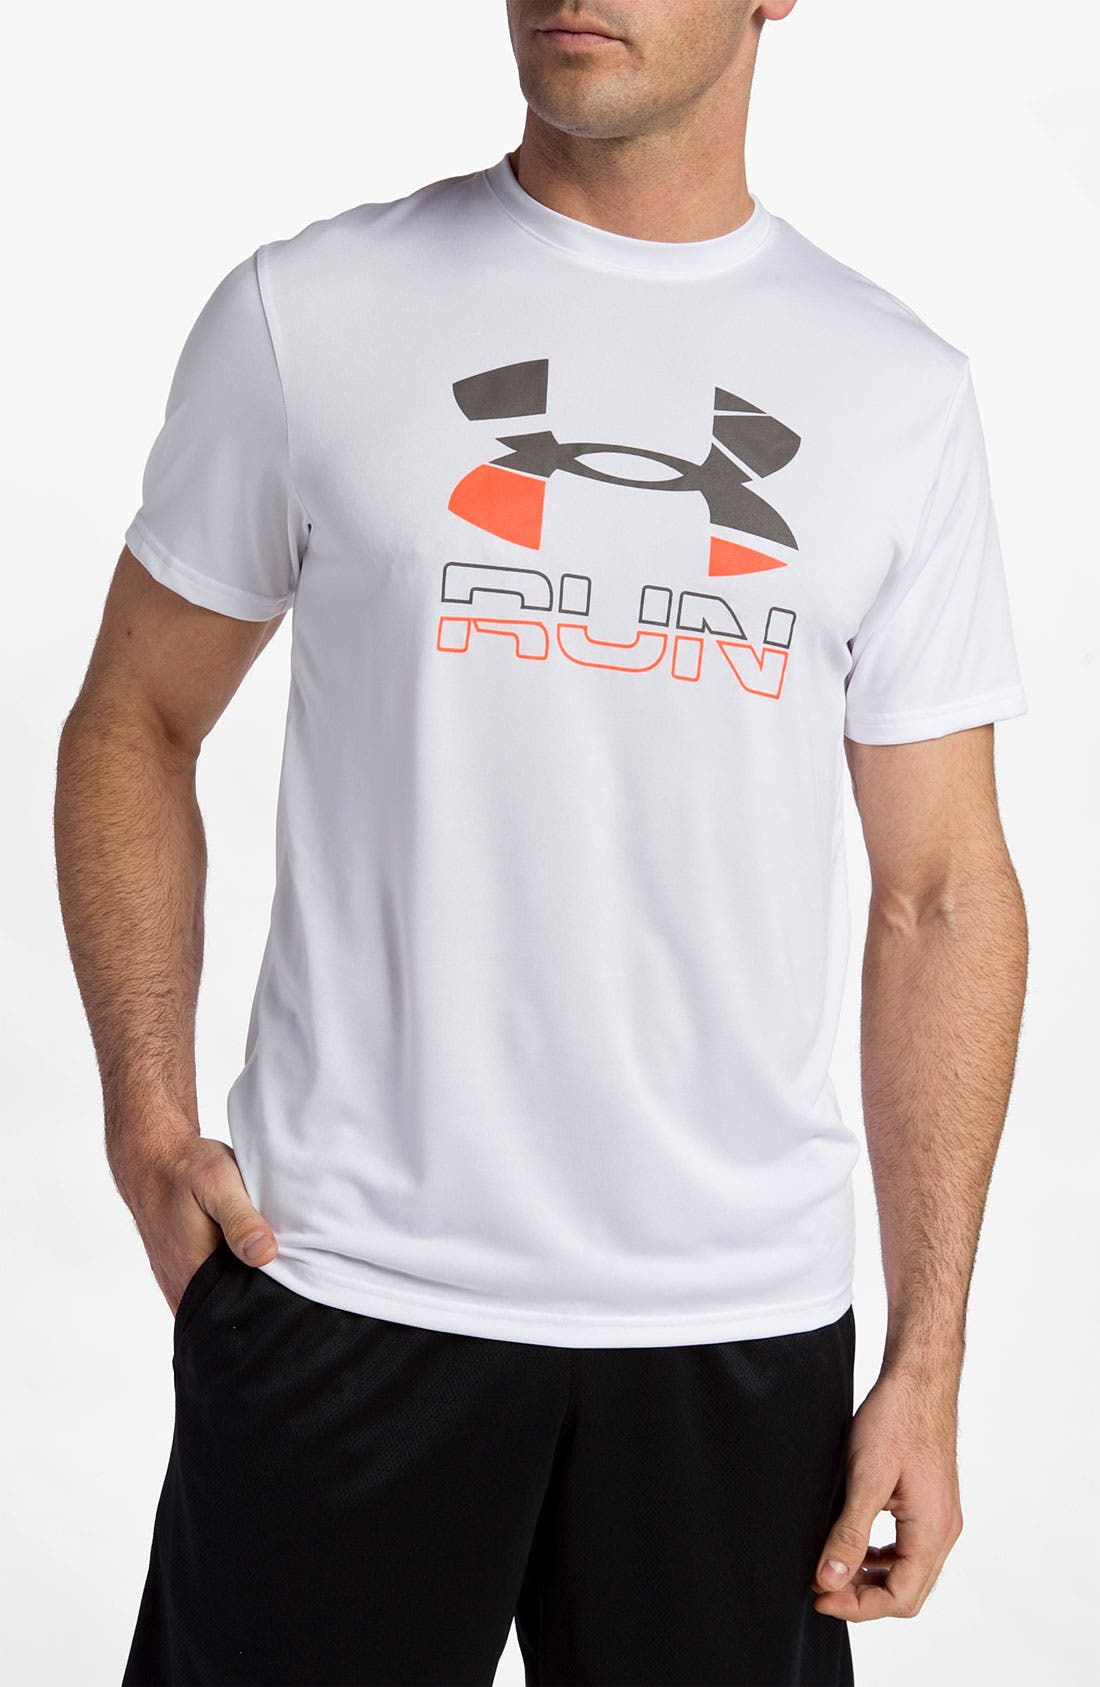 Alternate Image 1 Selected - Under Armour 'Run Graphic' T-Shirt